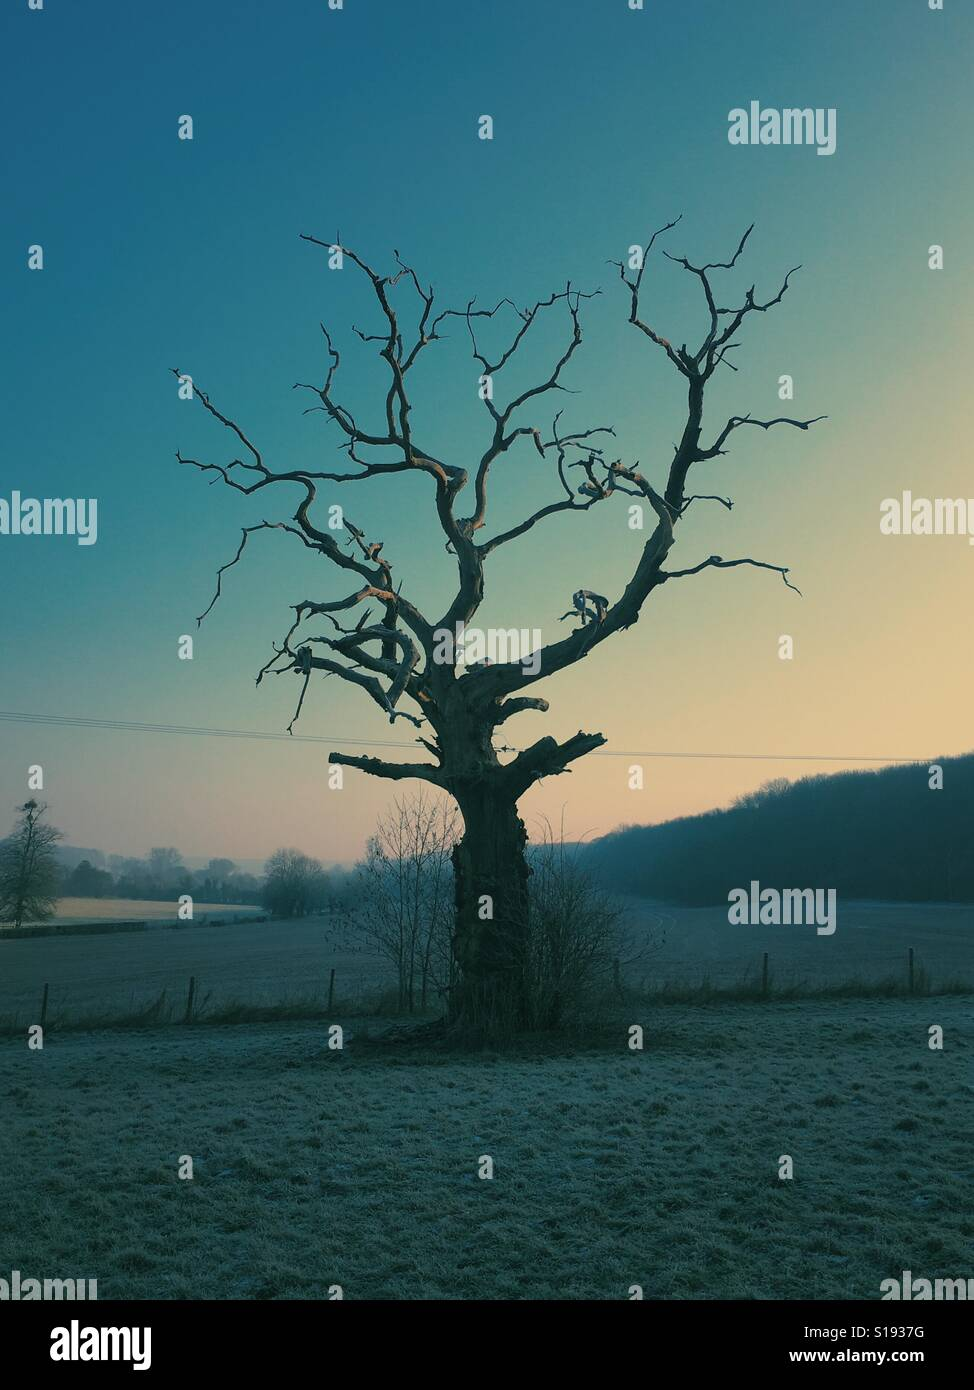 Tree at sunrises. - Stock Image